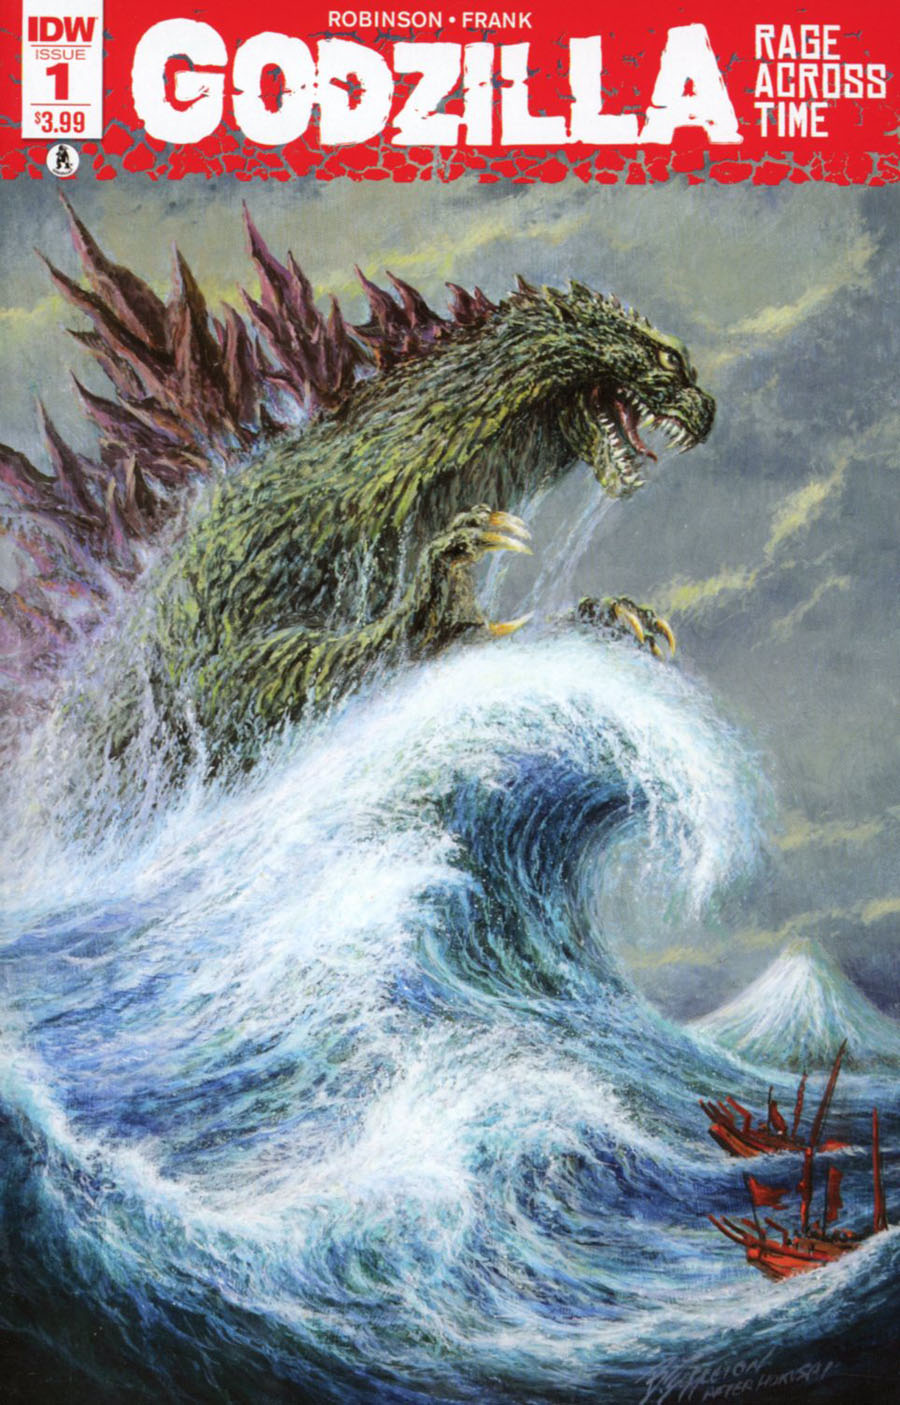 Godzilla Rage Across Time #1 Cover D 2nd Ptg Bob Eggleton Variant Cover